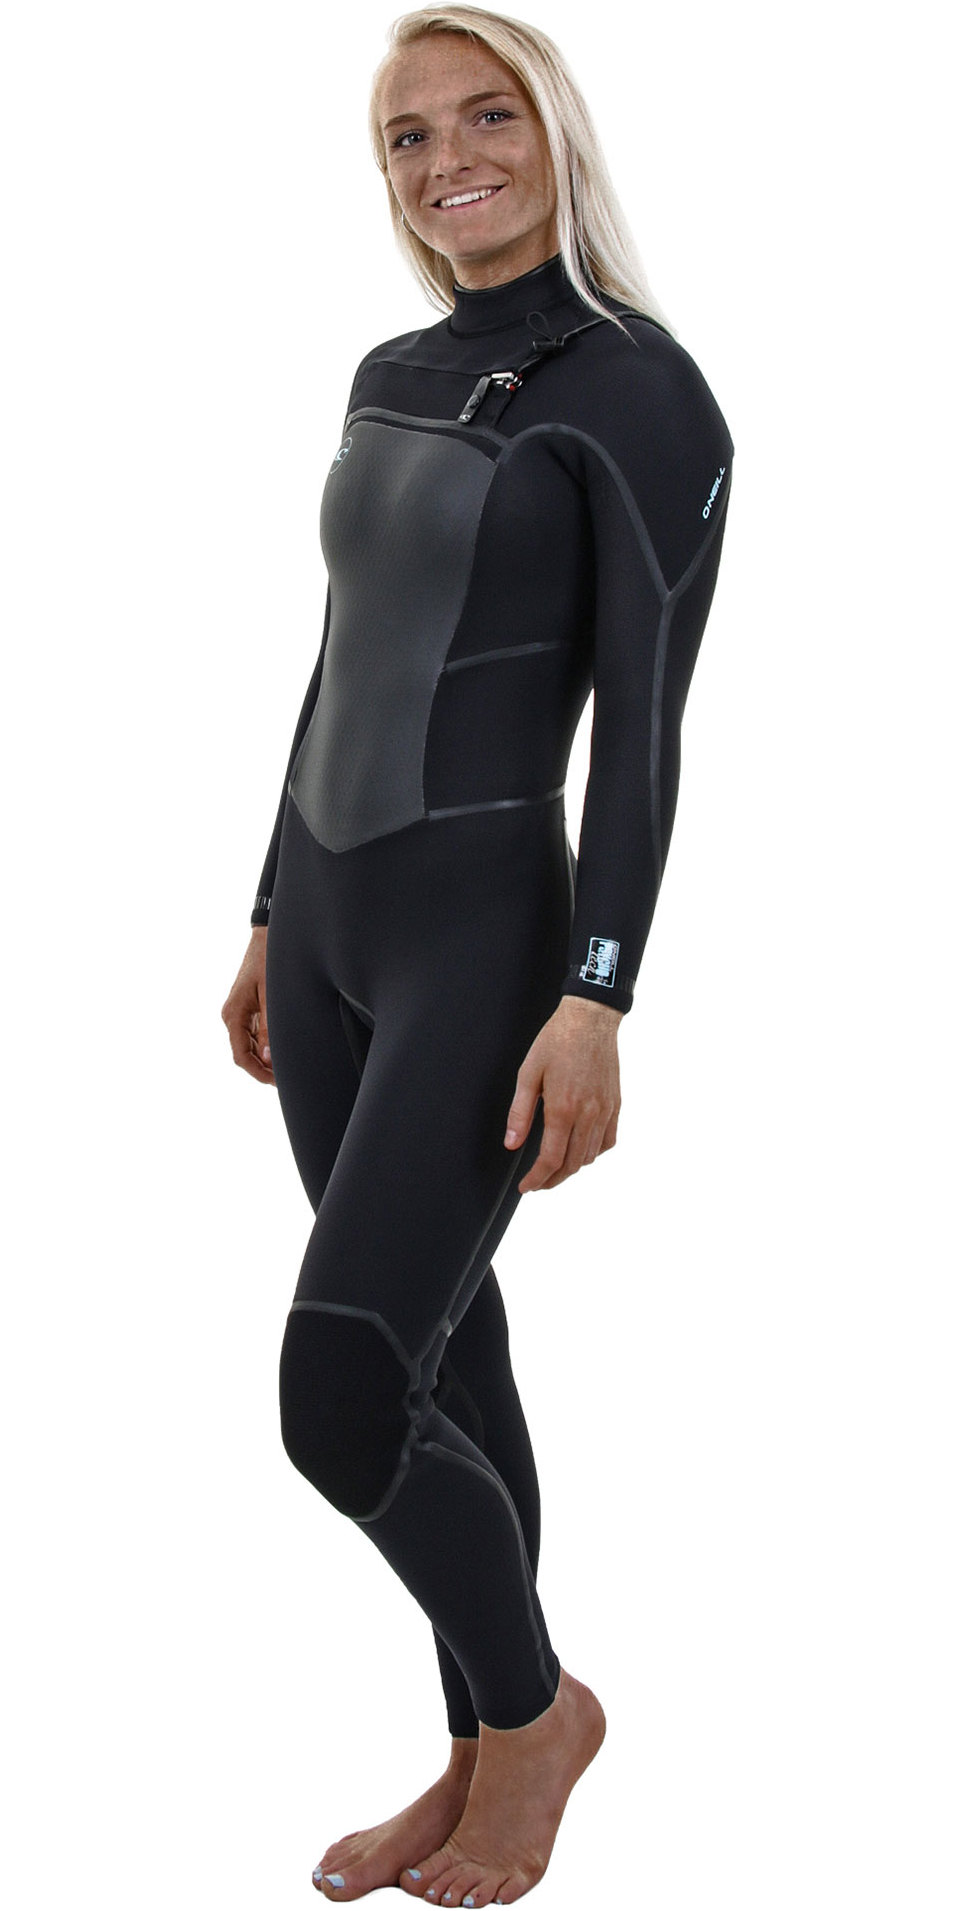 c8e12cce48 2018 Oneill Womens Psycho Tech 5 4mm Chest Zip Wetsuit Black 4989 - Womens  - 5mm Wetsuits